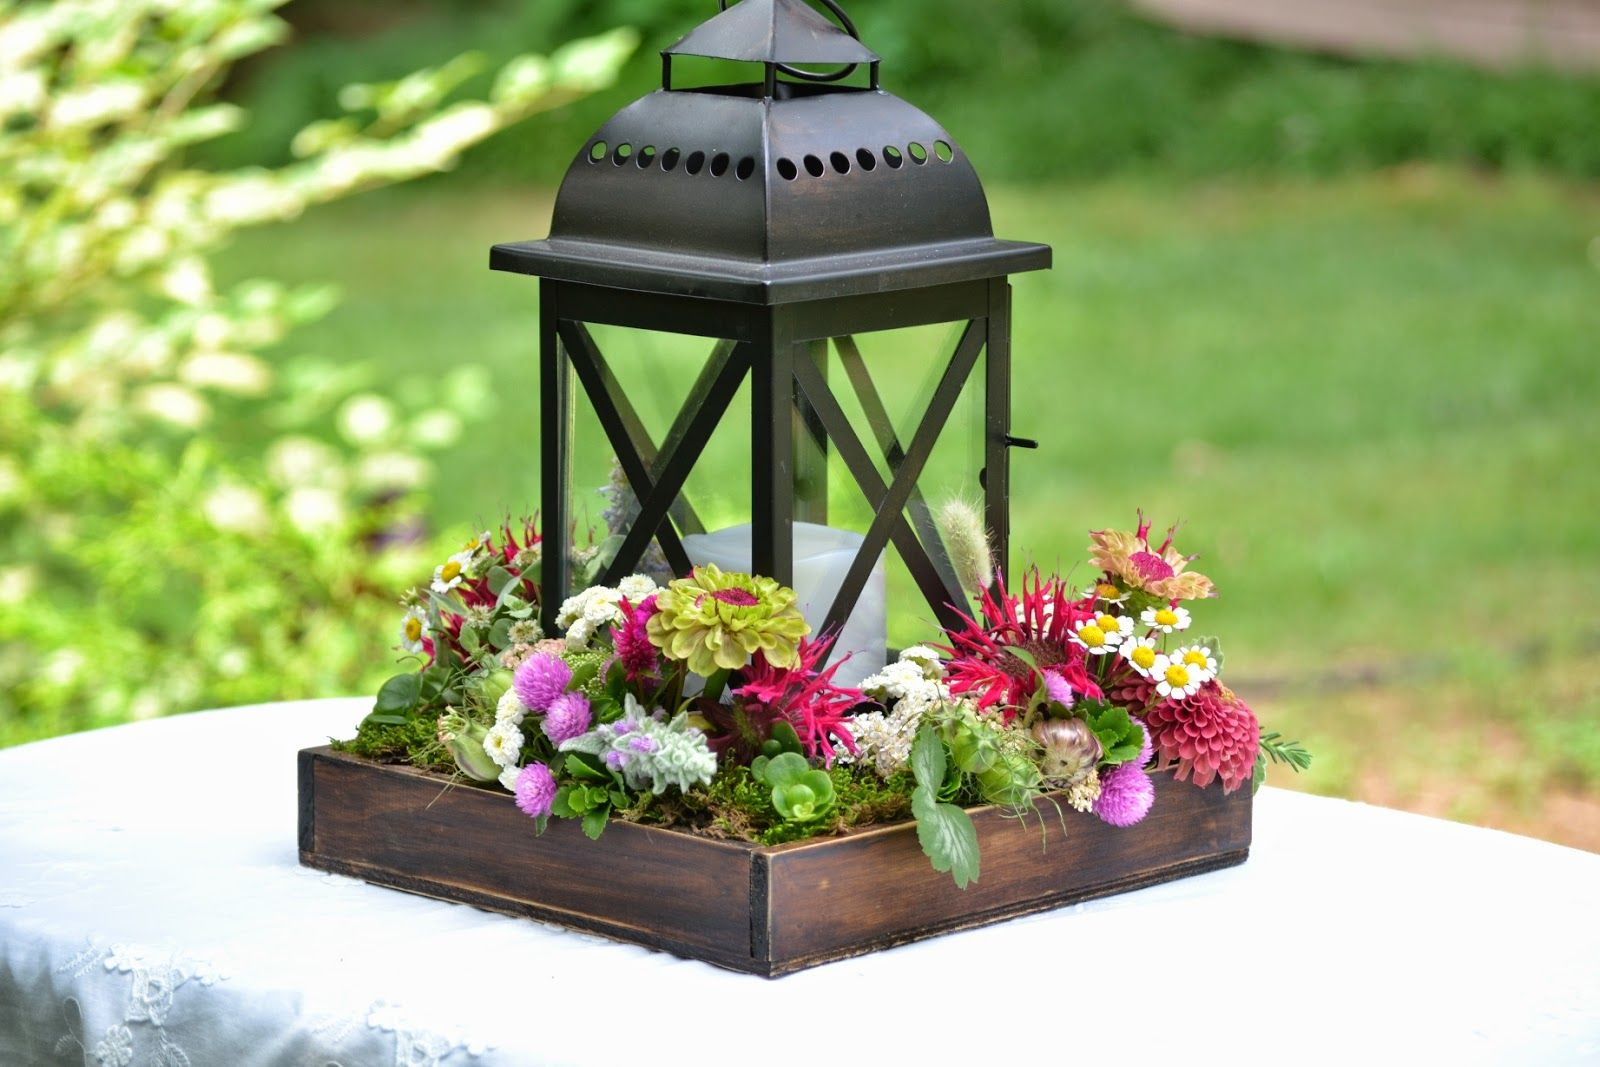 this is quite pretty - a lantern sitting inside a low wooden box ...